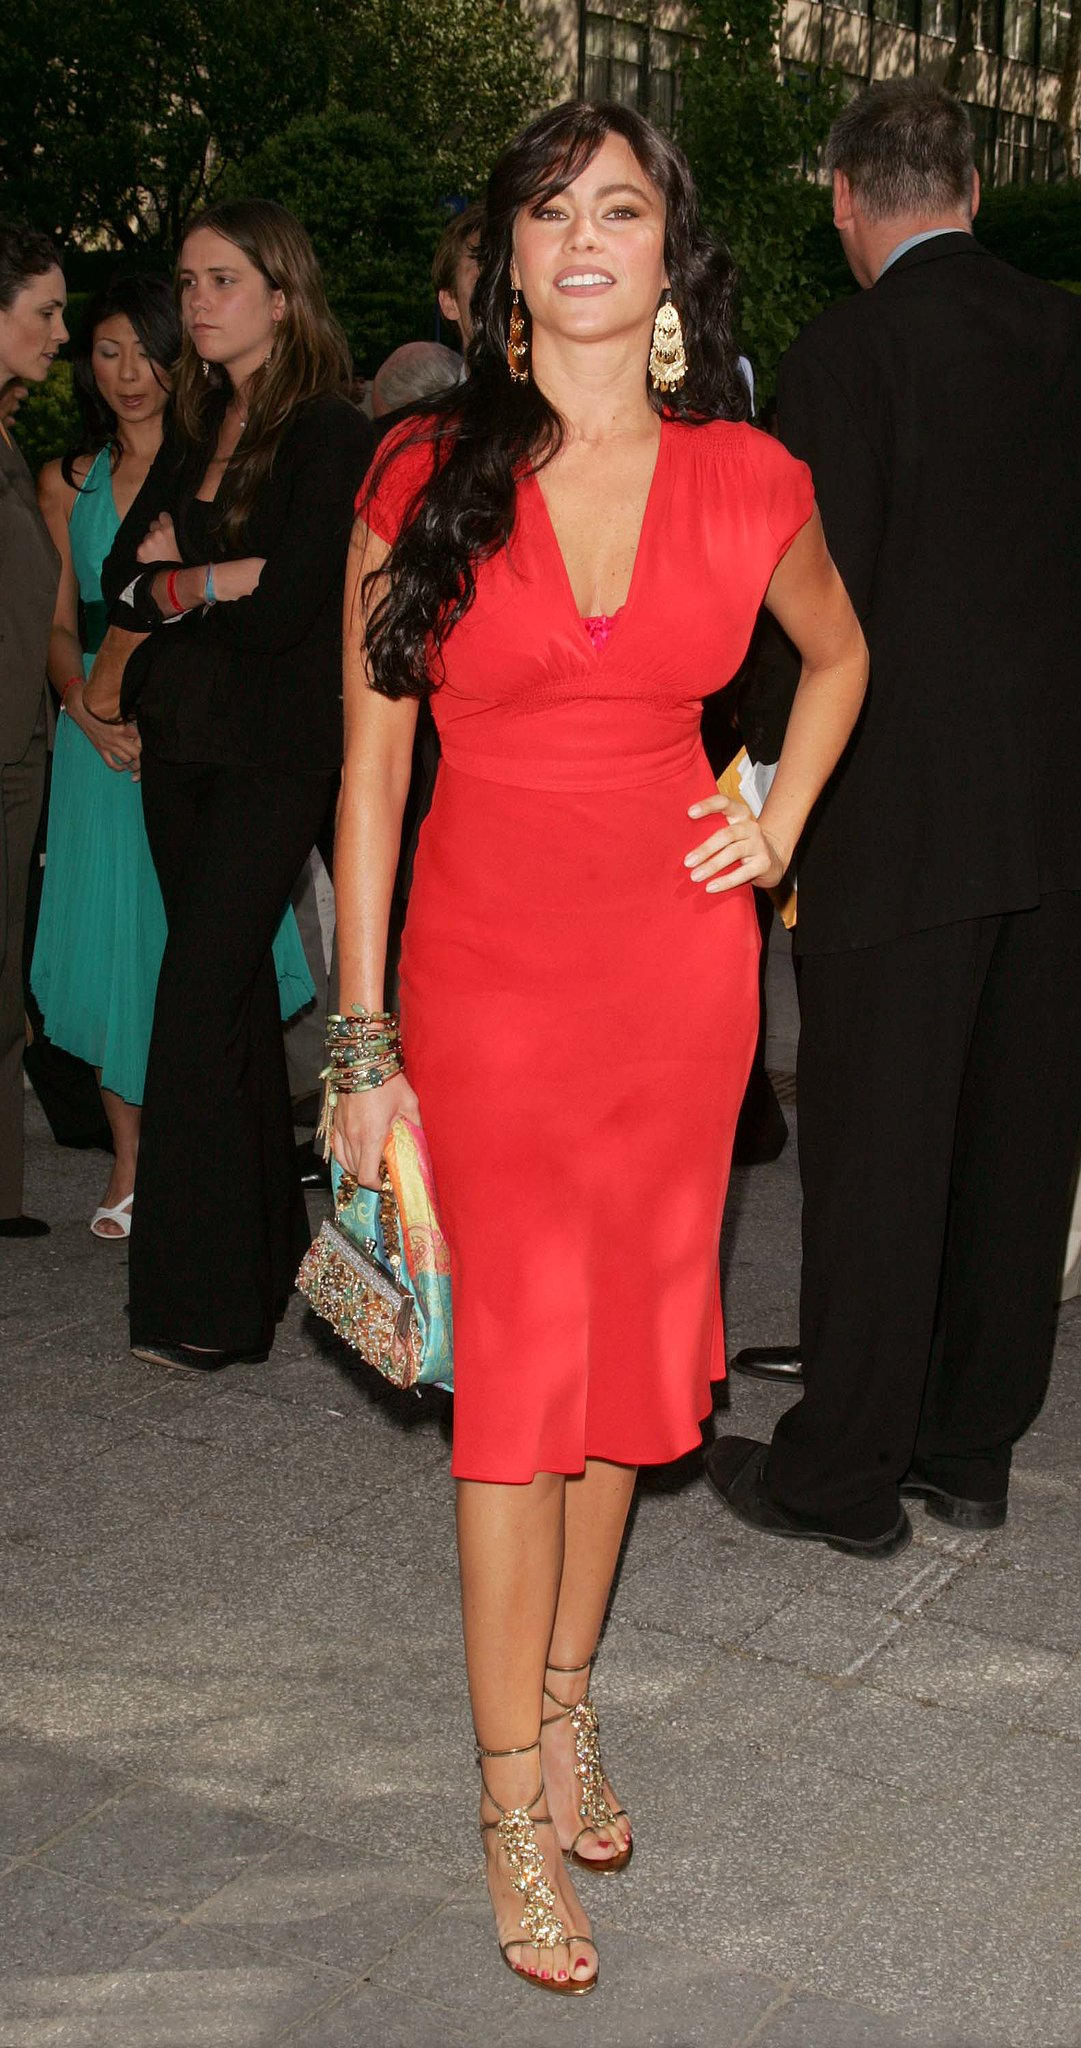 At the 2005/2006 ABC upfronts, Sofia wowed in a flirty red dress — and peekaboo pink lace bra — gold ankle-wrap sandals, and equally dazzling chandelier earrings.